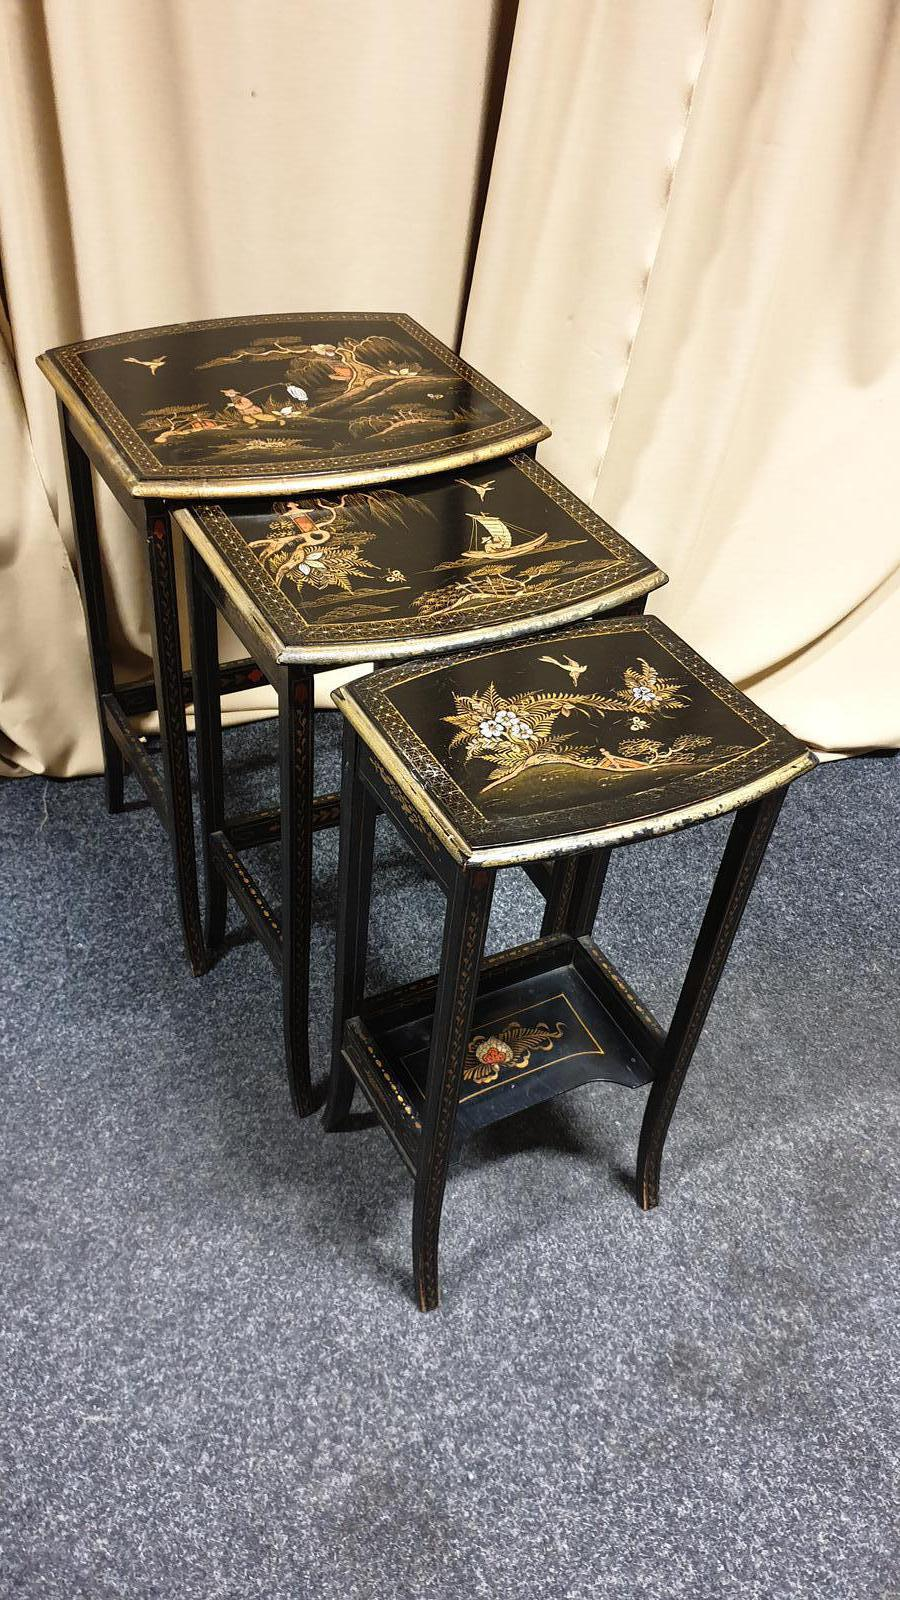 Chinoiserie Nest of Three Tables (1 of 1)